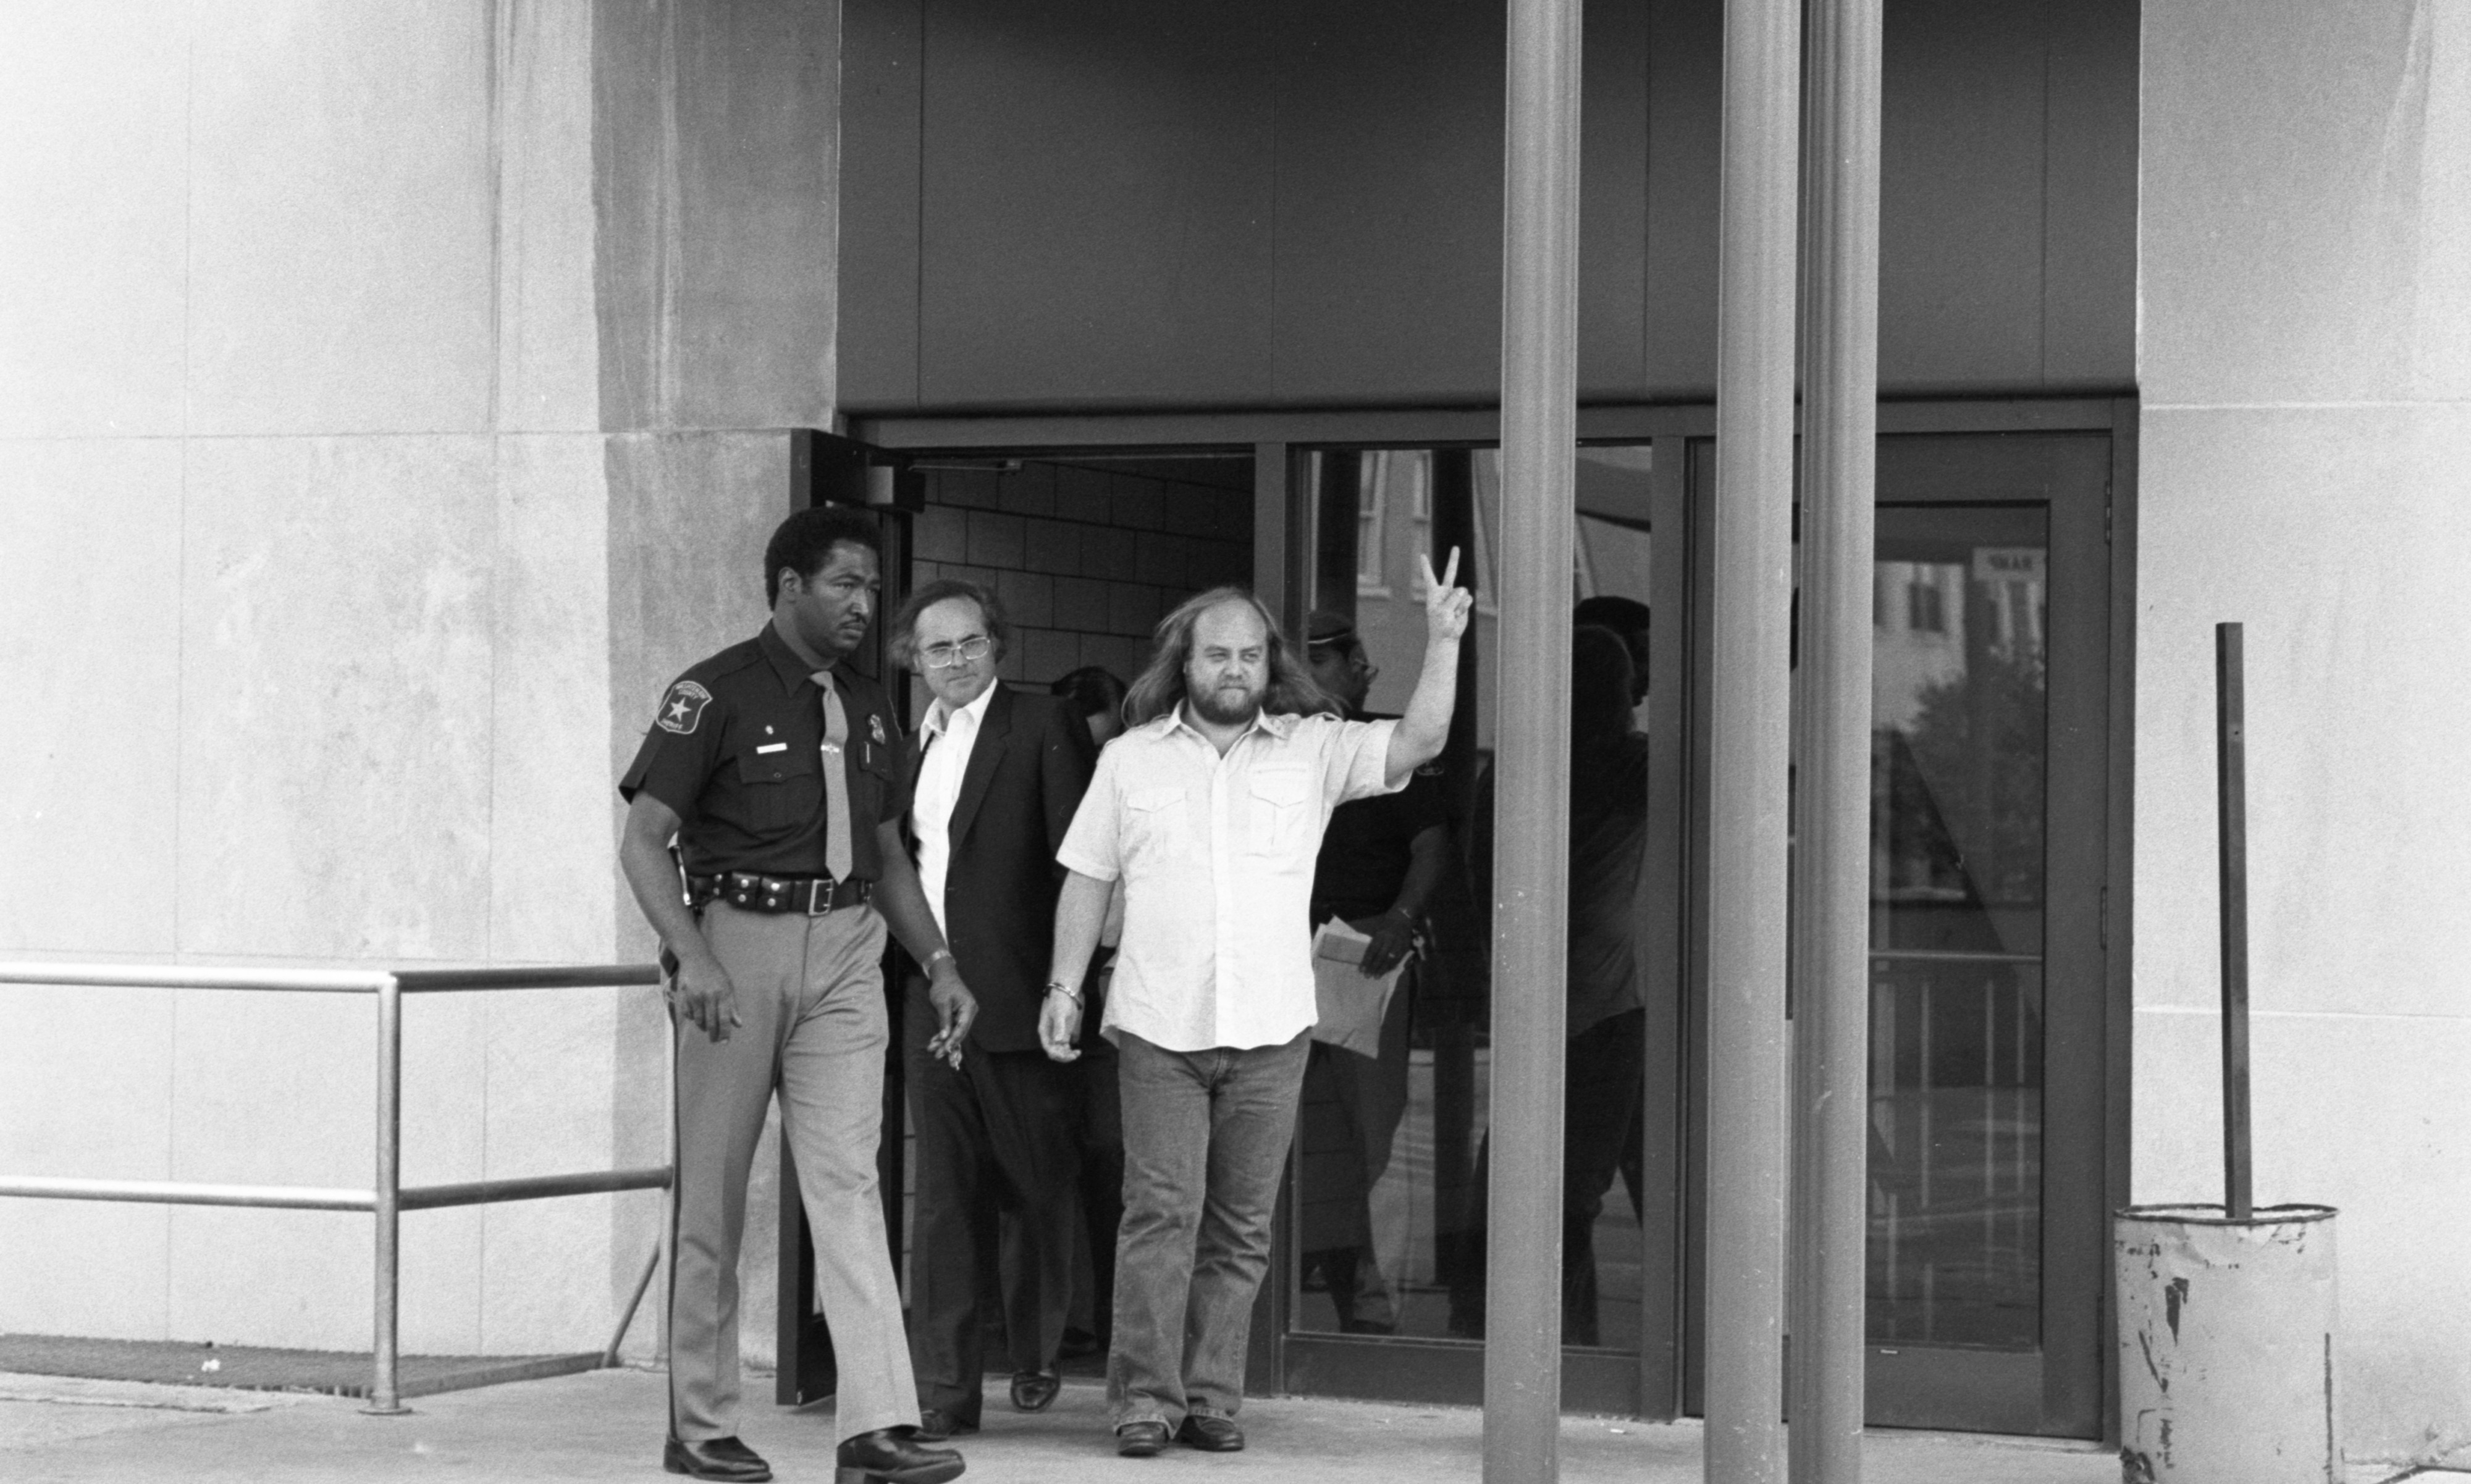 Deputy Larry Clemons Escorts Noel Lippman & Terry Shoultes To Jail - September 10, 1982 image